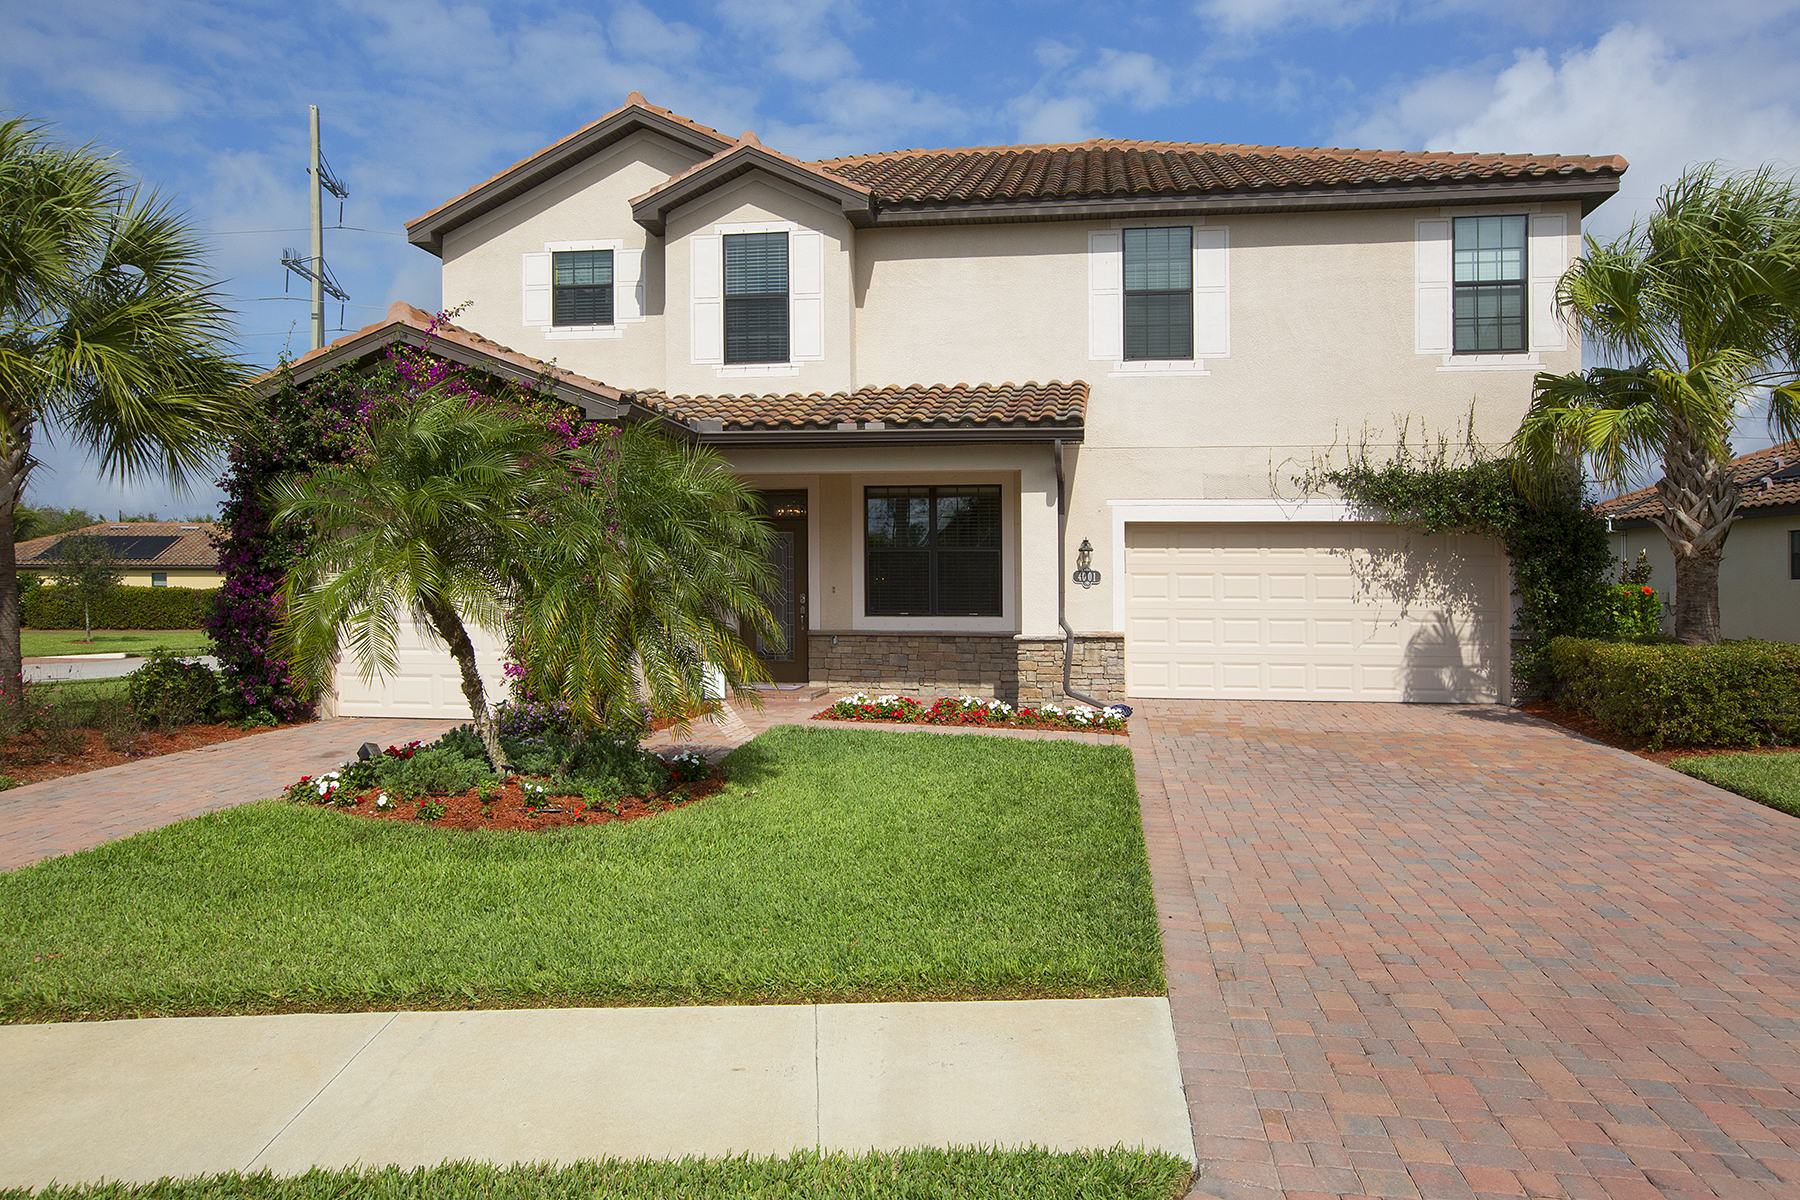 Single Family Home for Sale at COPPER COVE 4001 Treasure Cove Cir Naples, Florida, 34114 United States